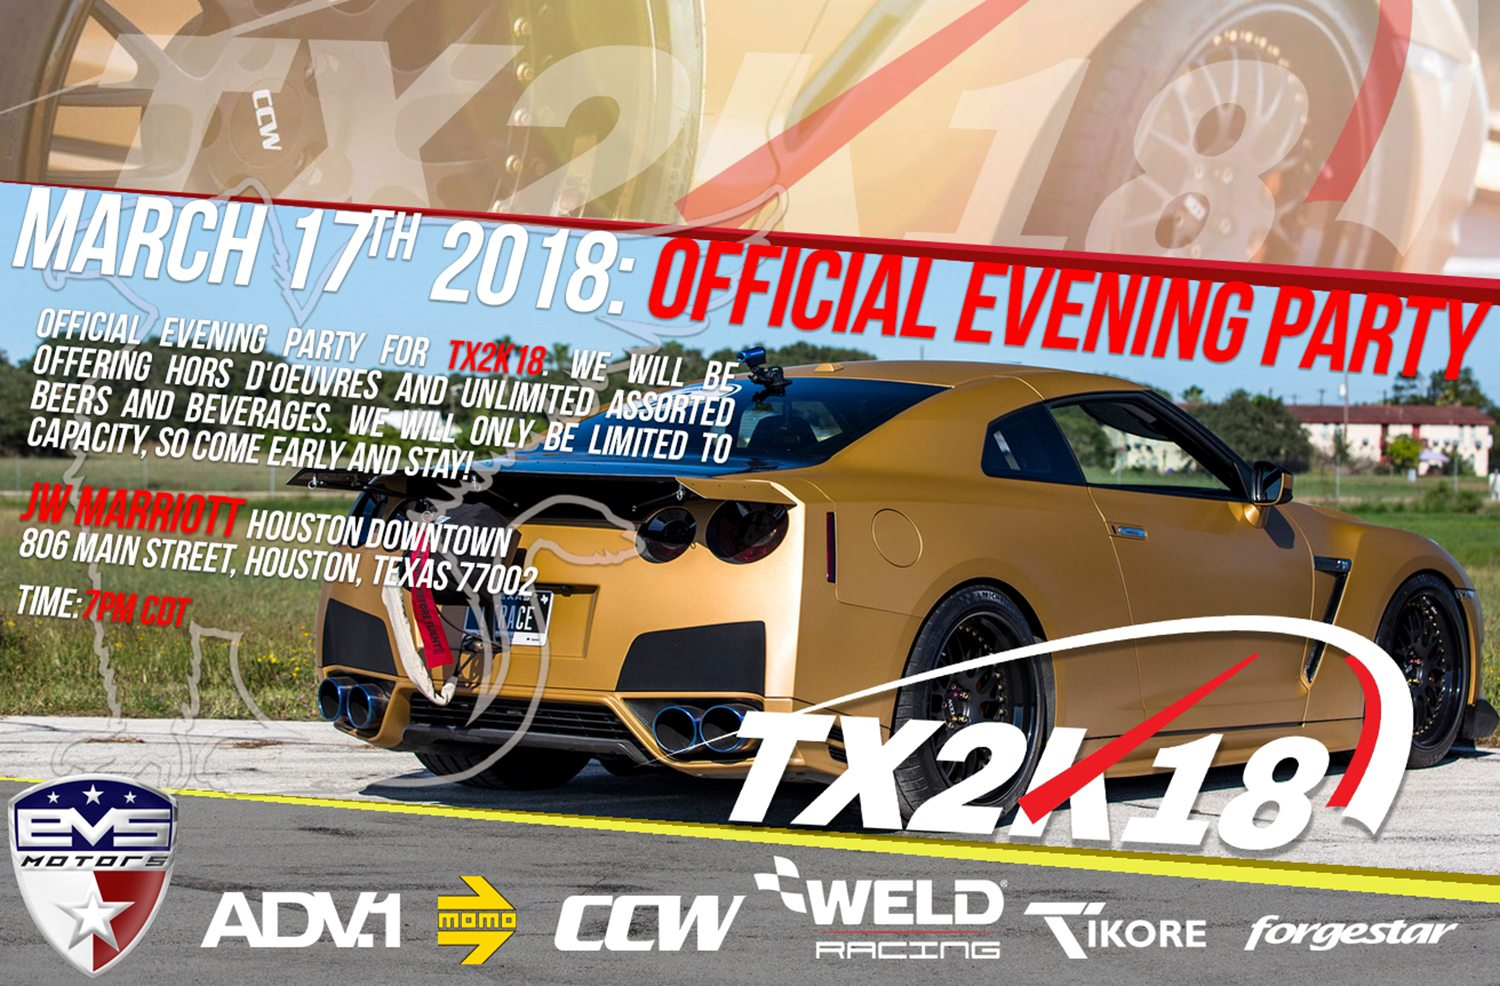 March 17th: Official EVS Motors TX2K18 Evening Party